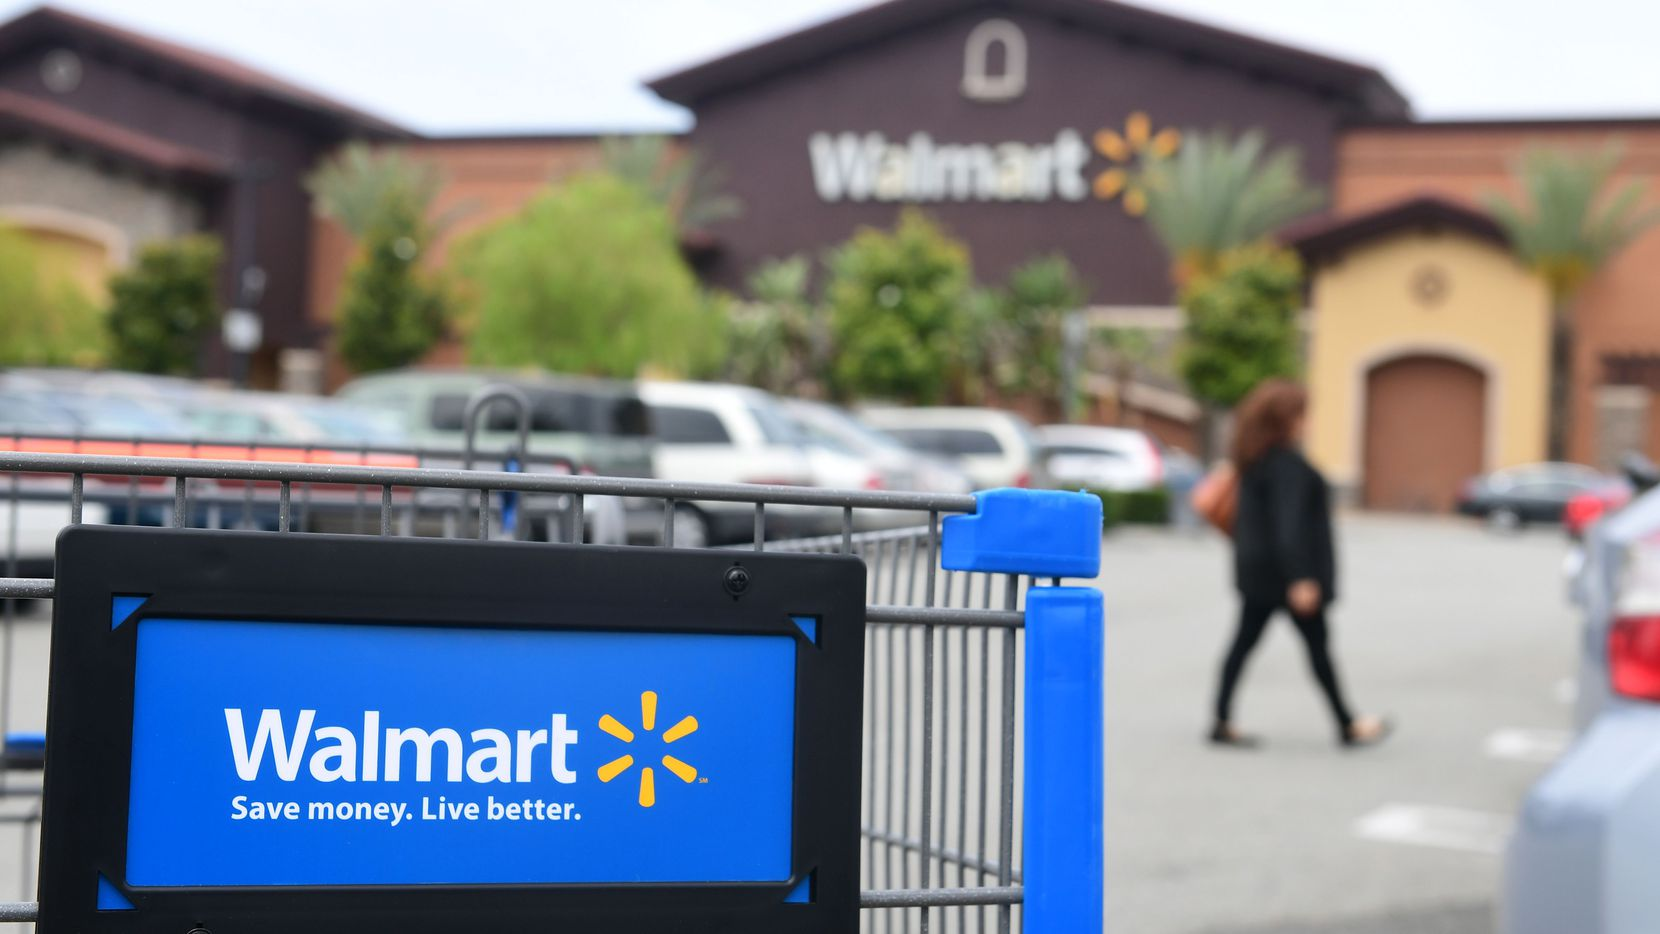 Walmart is imposing employee travel restrictions and canceling a conference next week in Dallas.